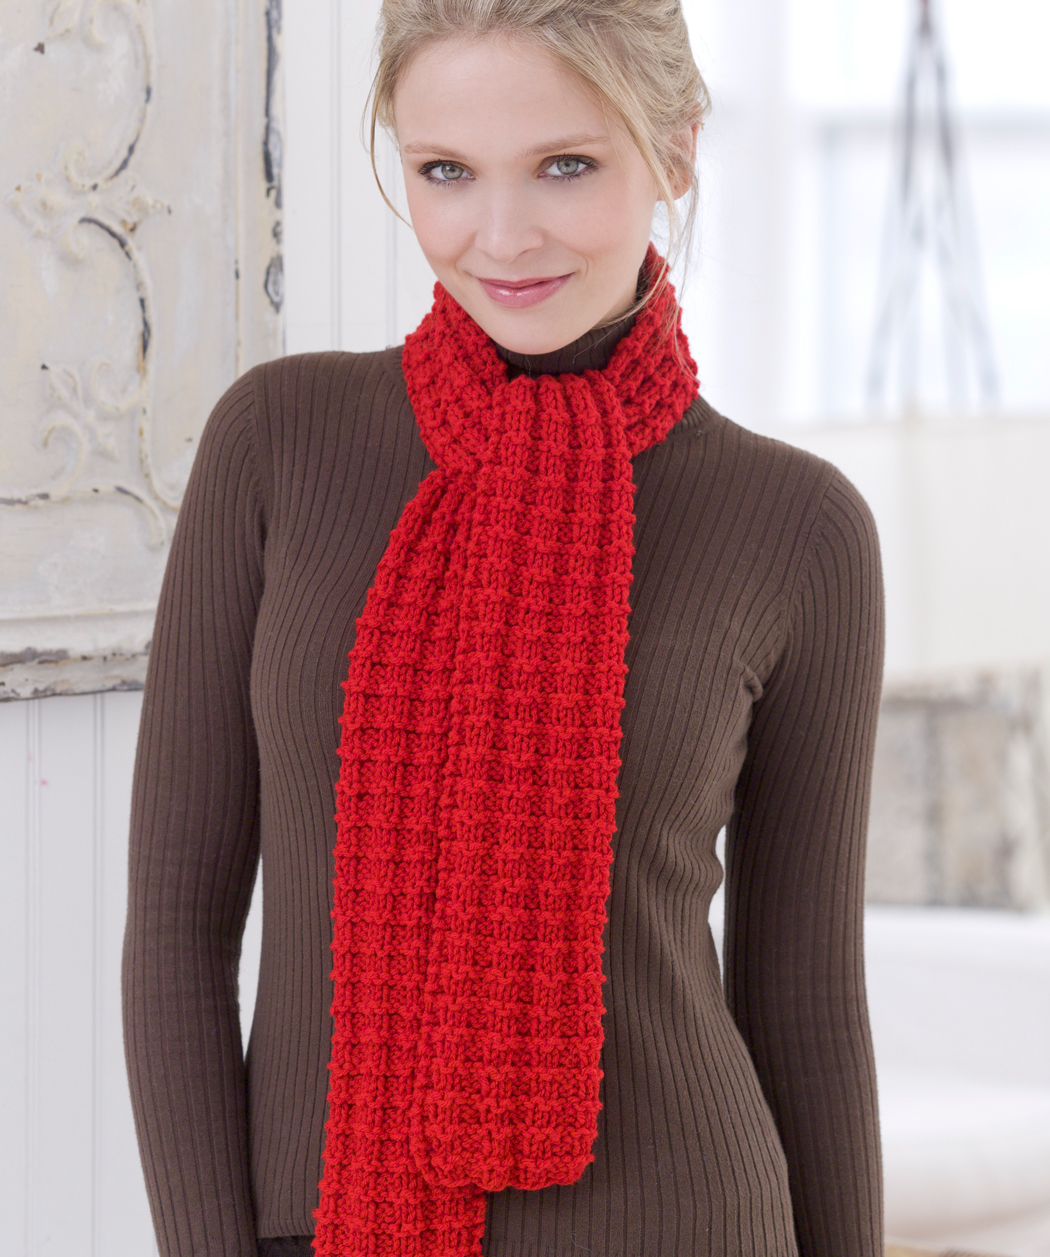 Rede Mode: Scarves-knitting patterns